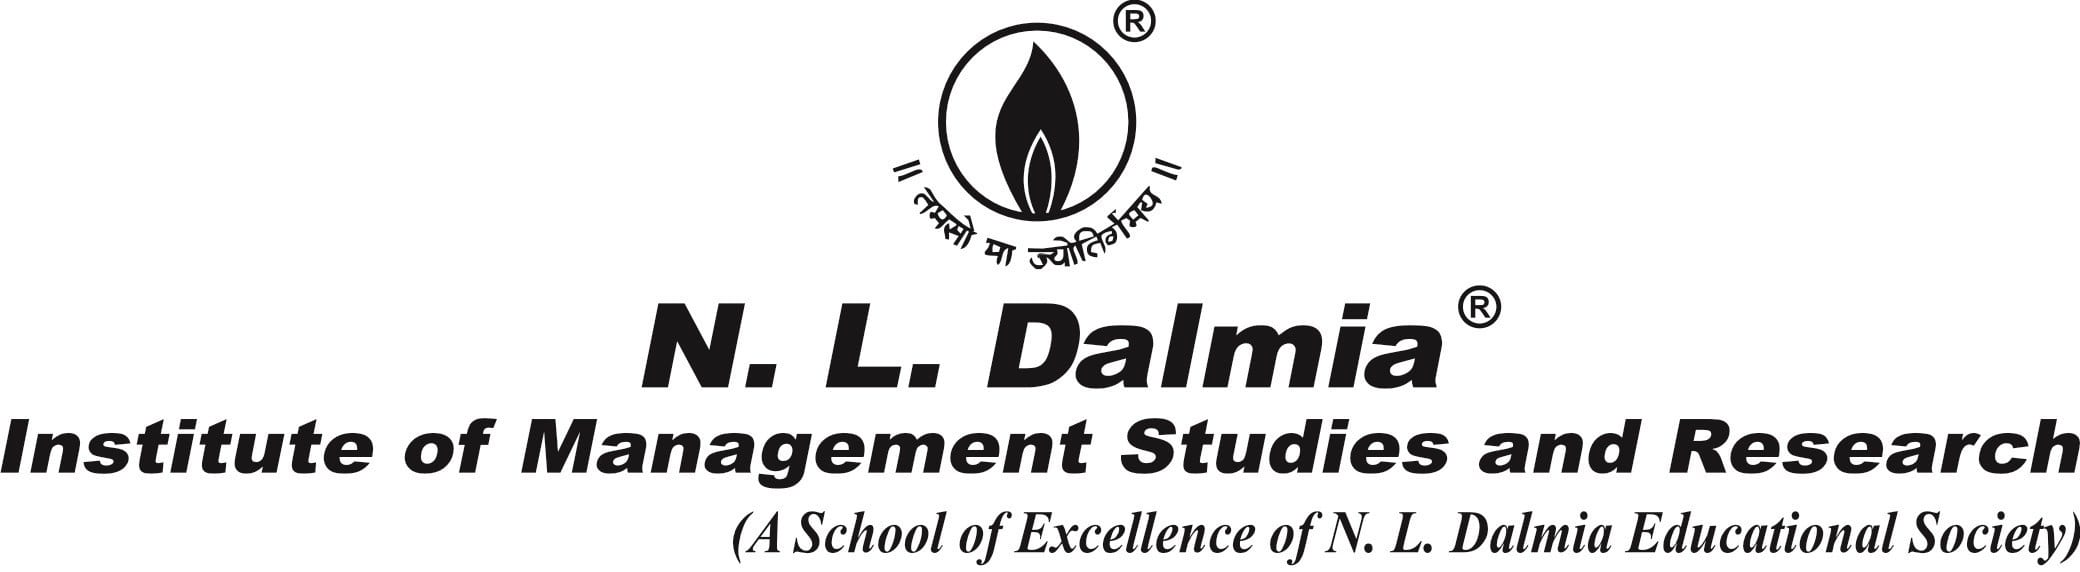 N. L. Dalmia Centre of Excellence Offering Postgraduate Program in Business Analytics in Association with Virginia Tech, U.S.A